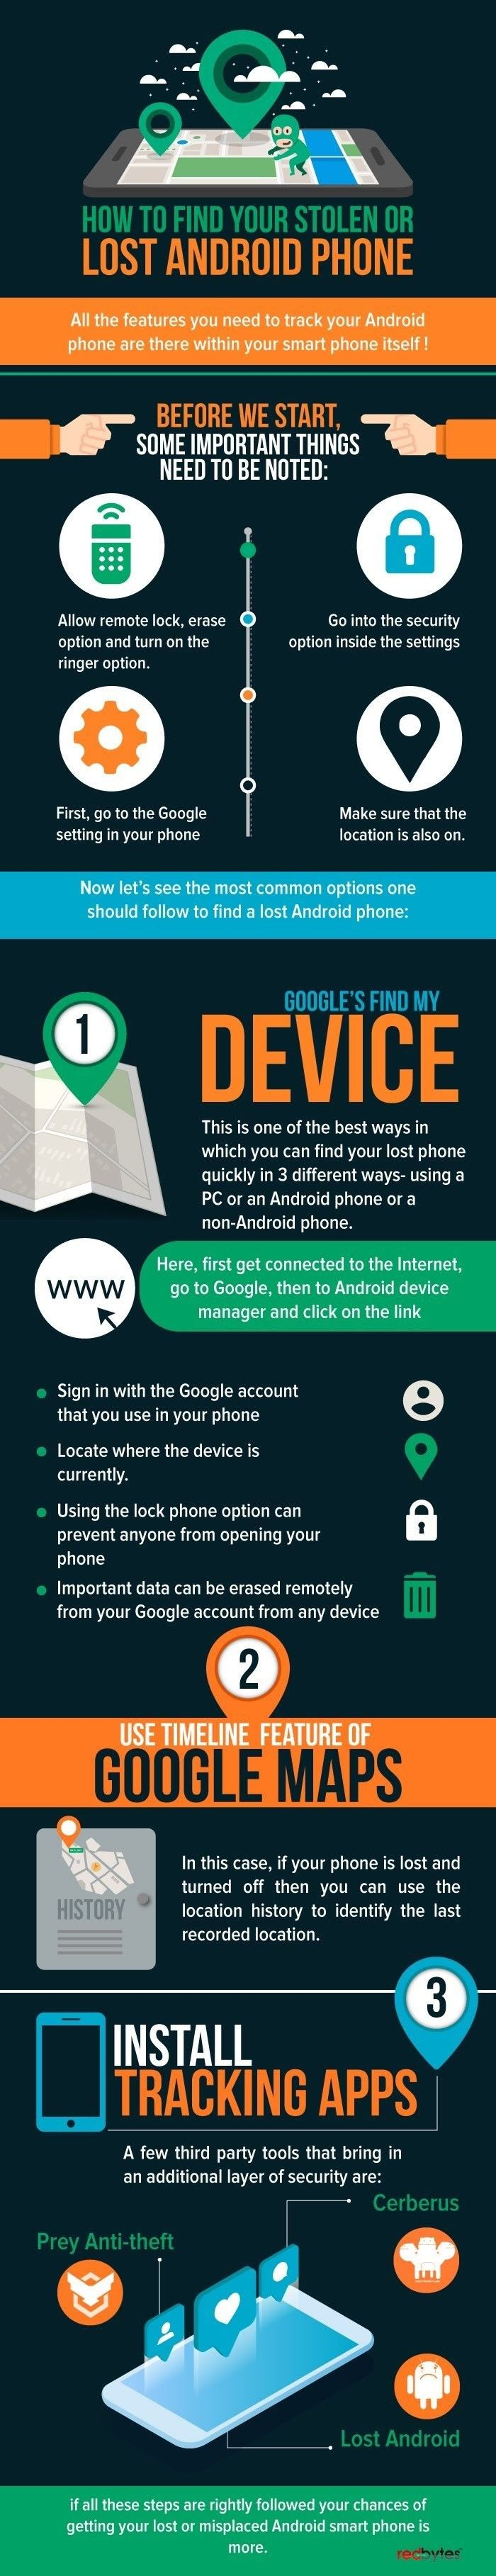 How To Find Your Stolen or Lost Android Phone Infographic